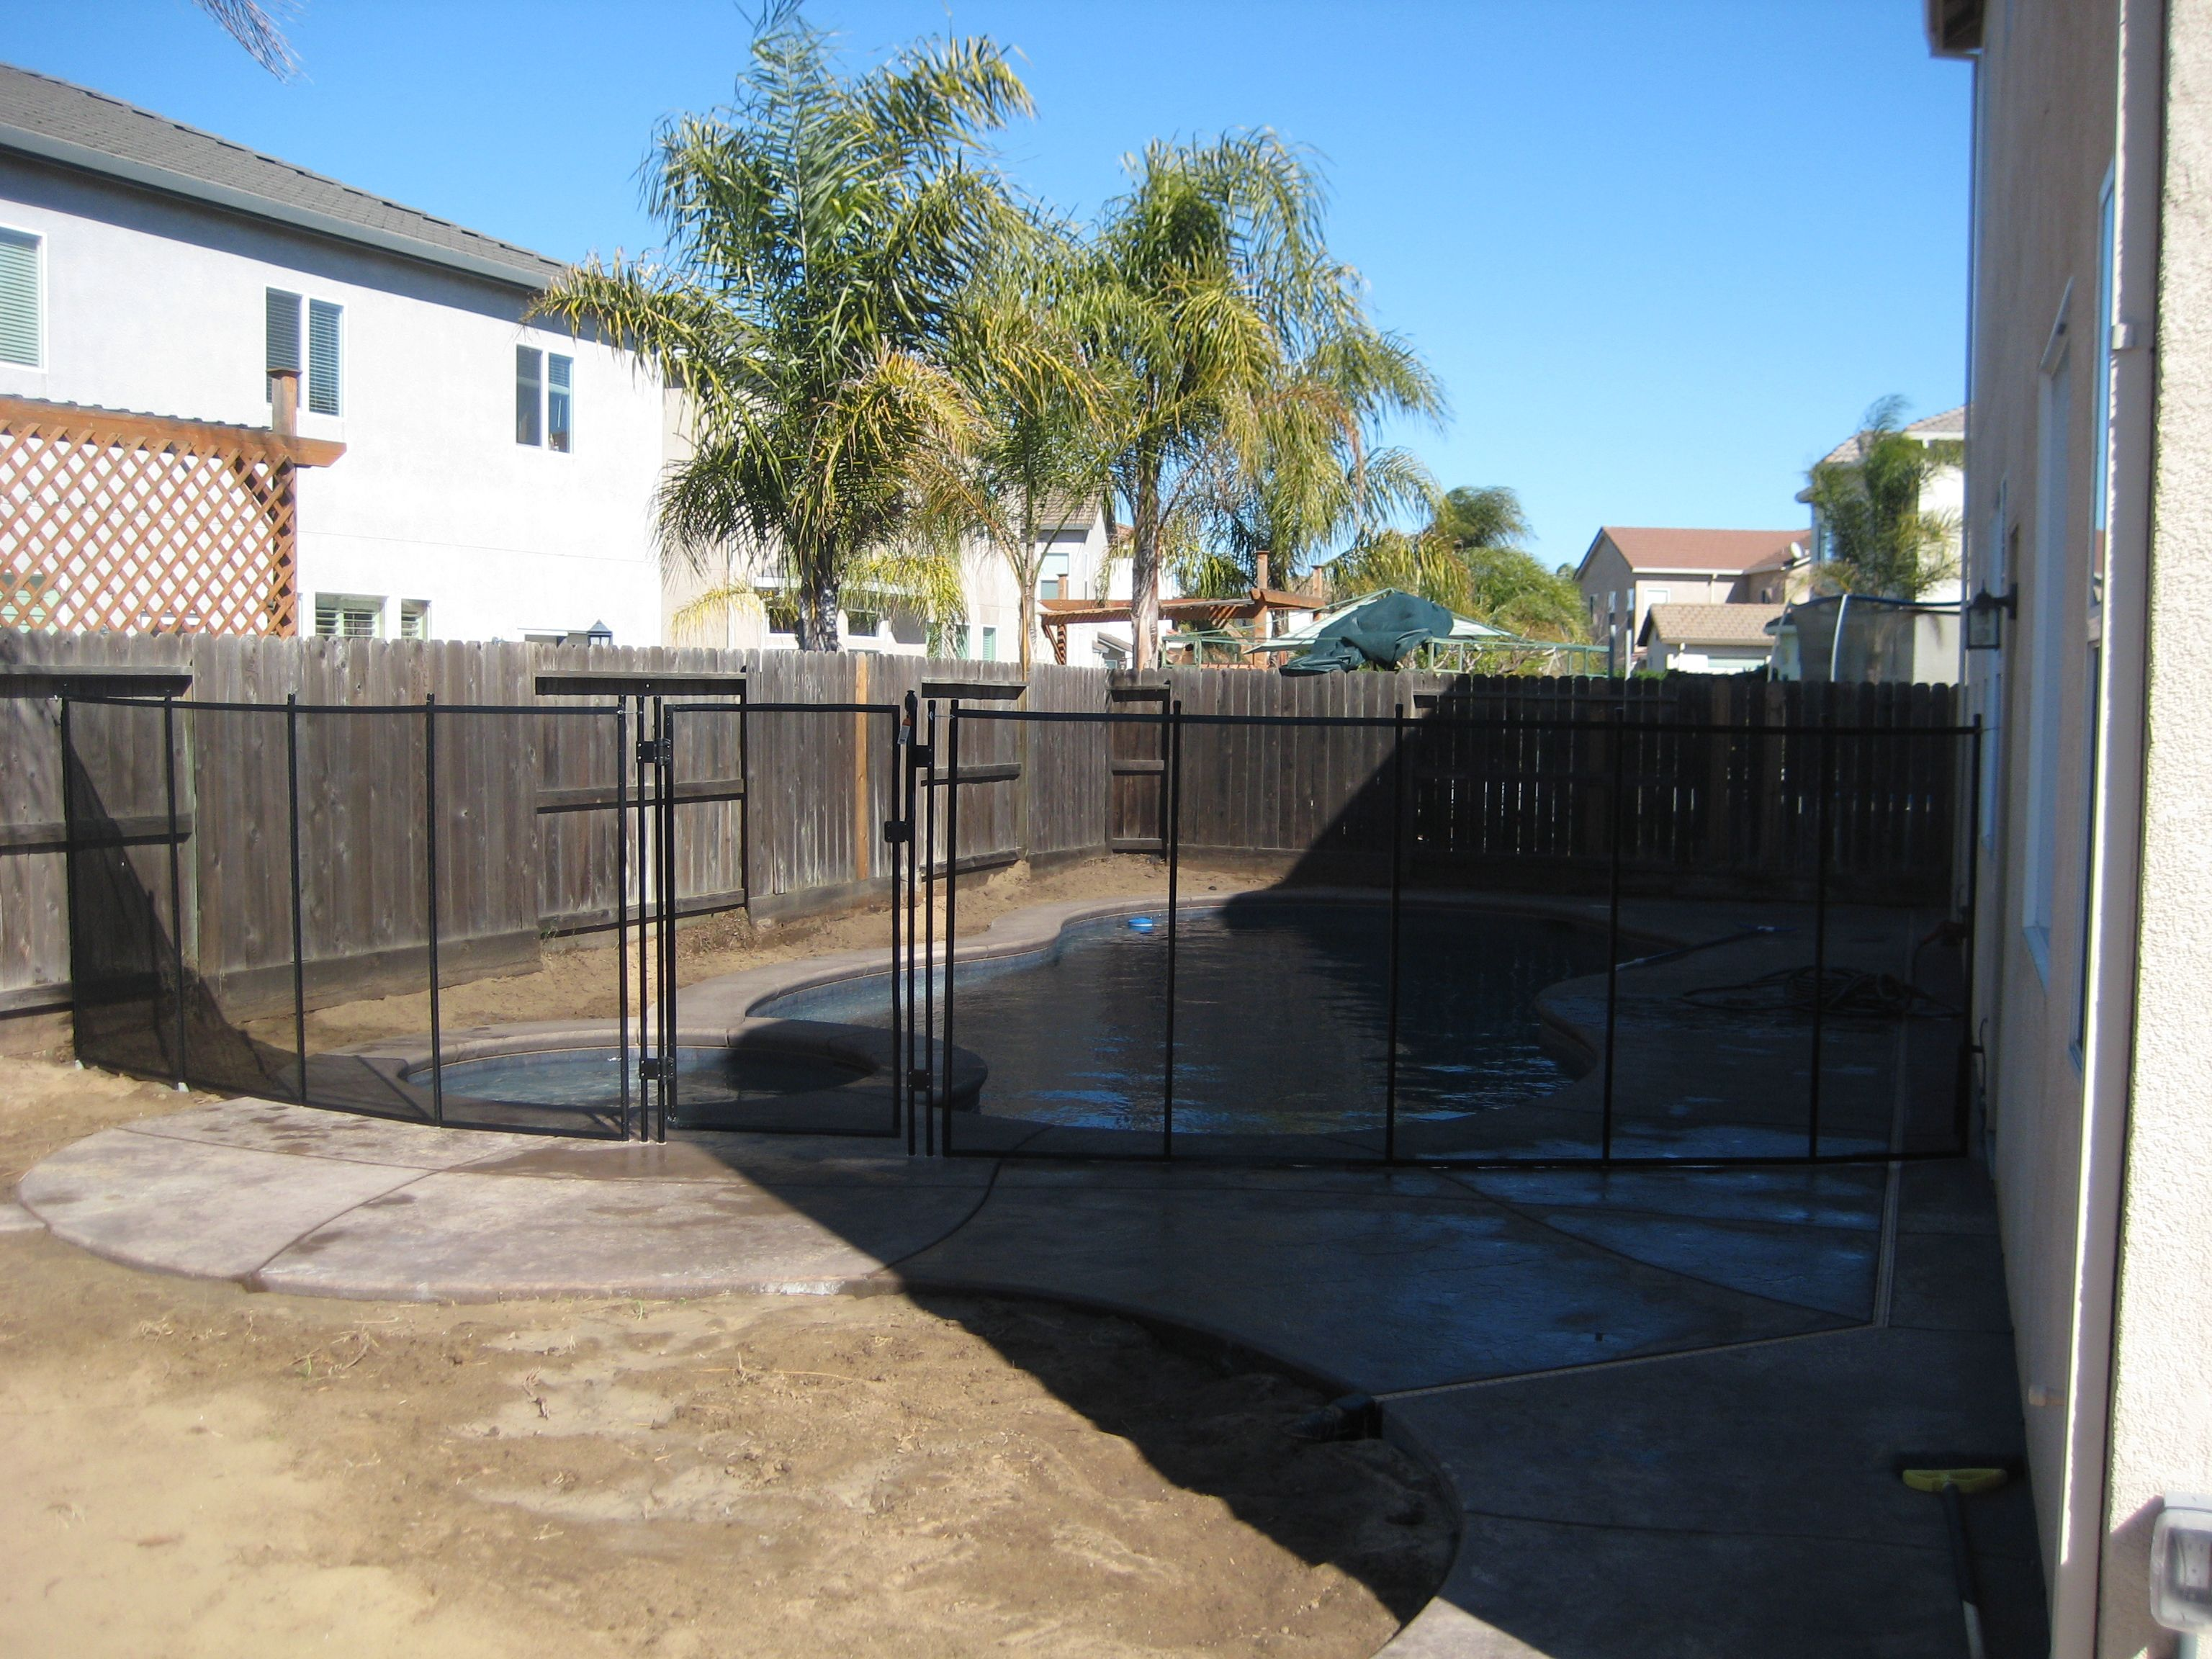 Pool Safety Fence In Stockton Ca Ca Code Compliant For